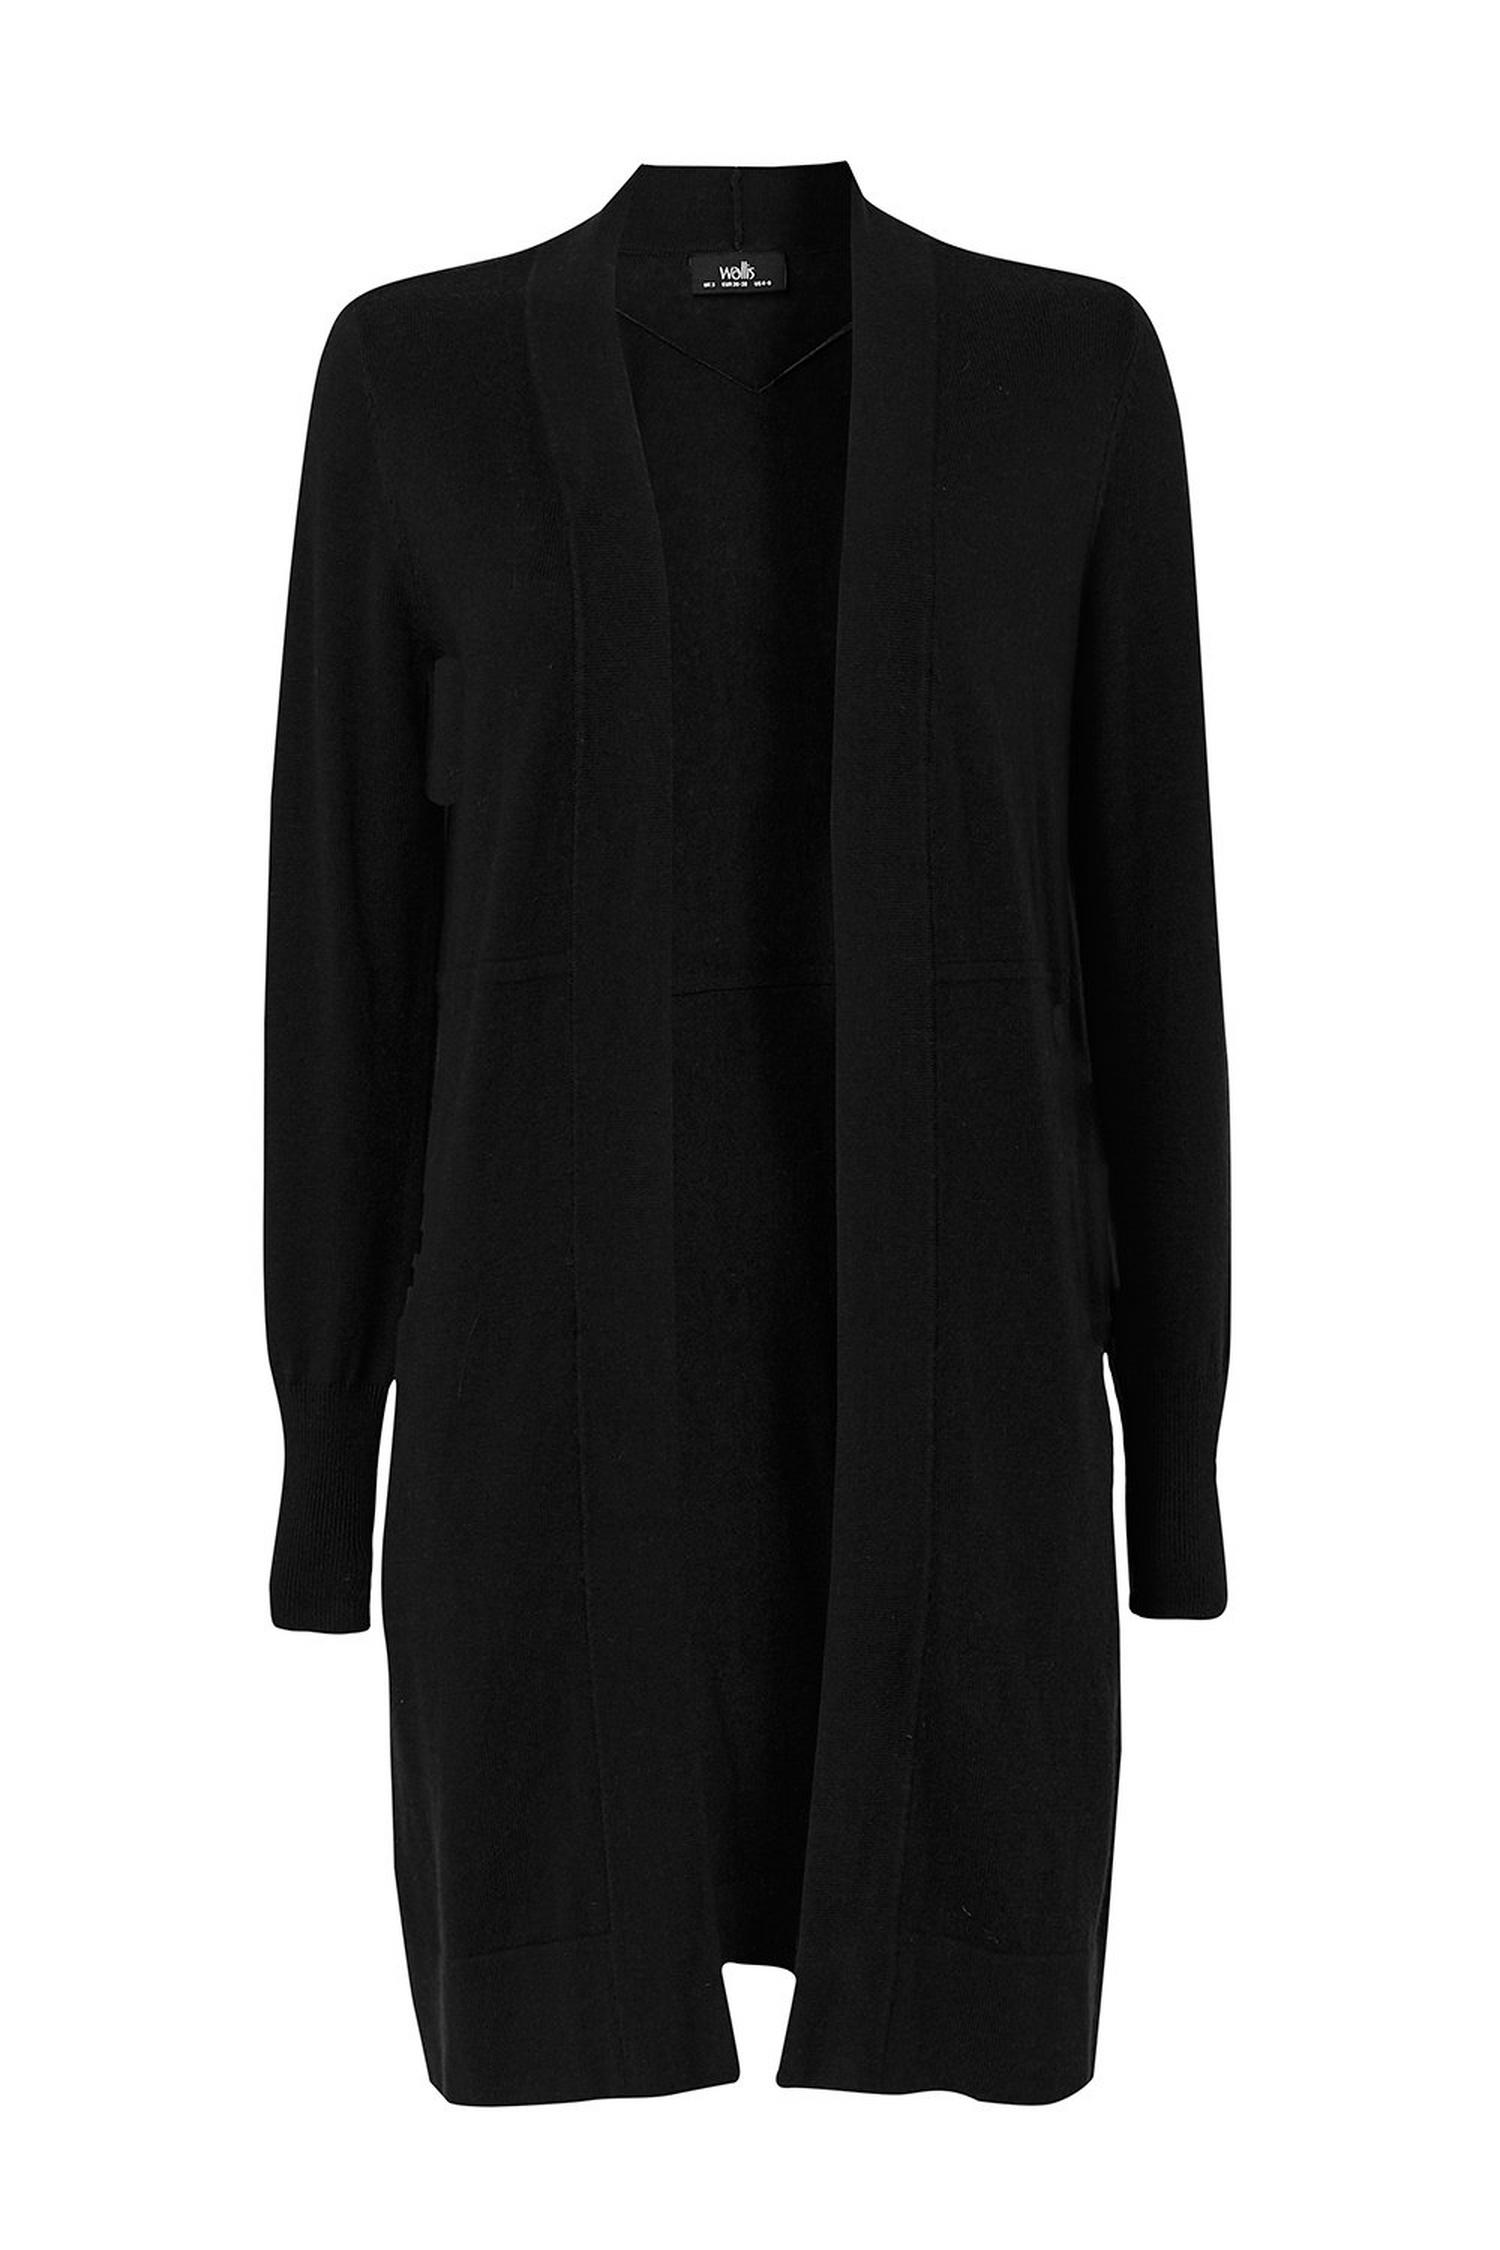 105 Black Wool Blend Cardigan image number 2